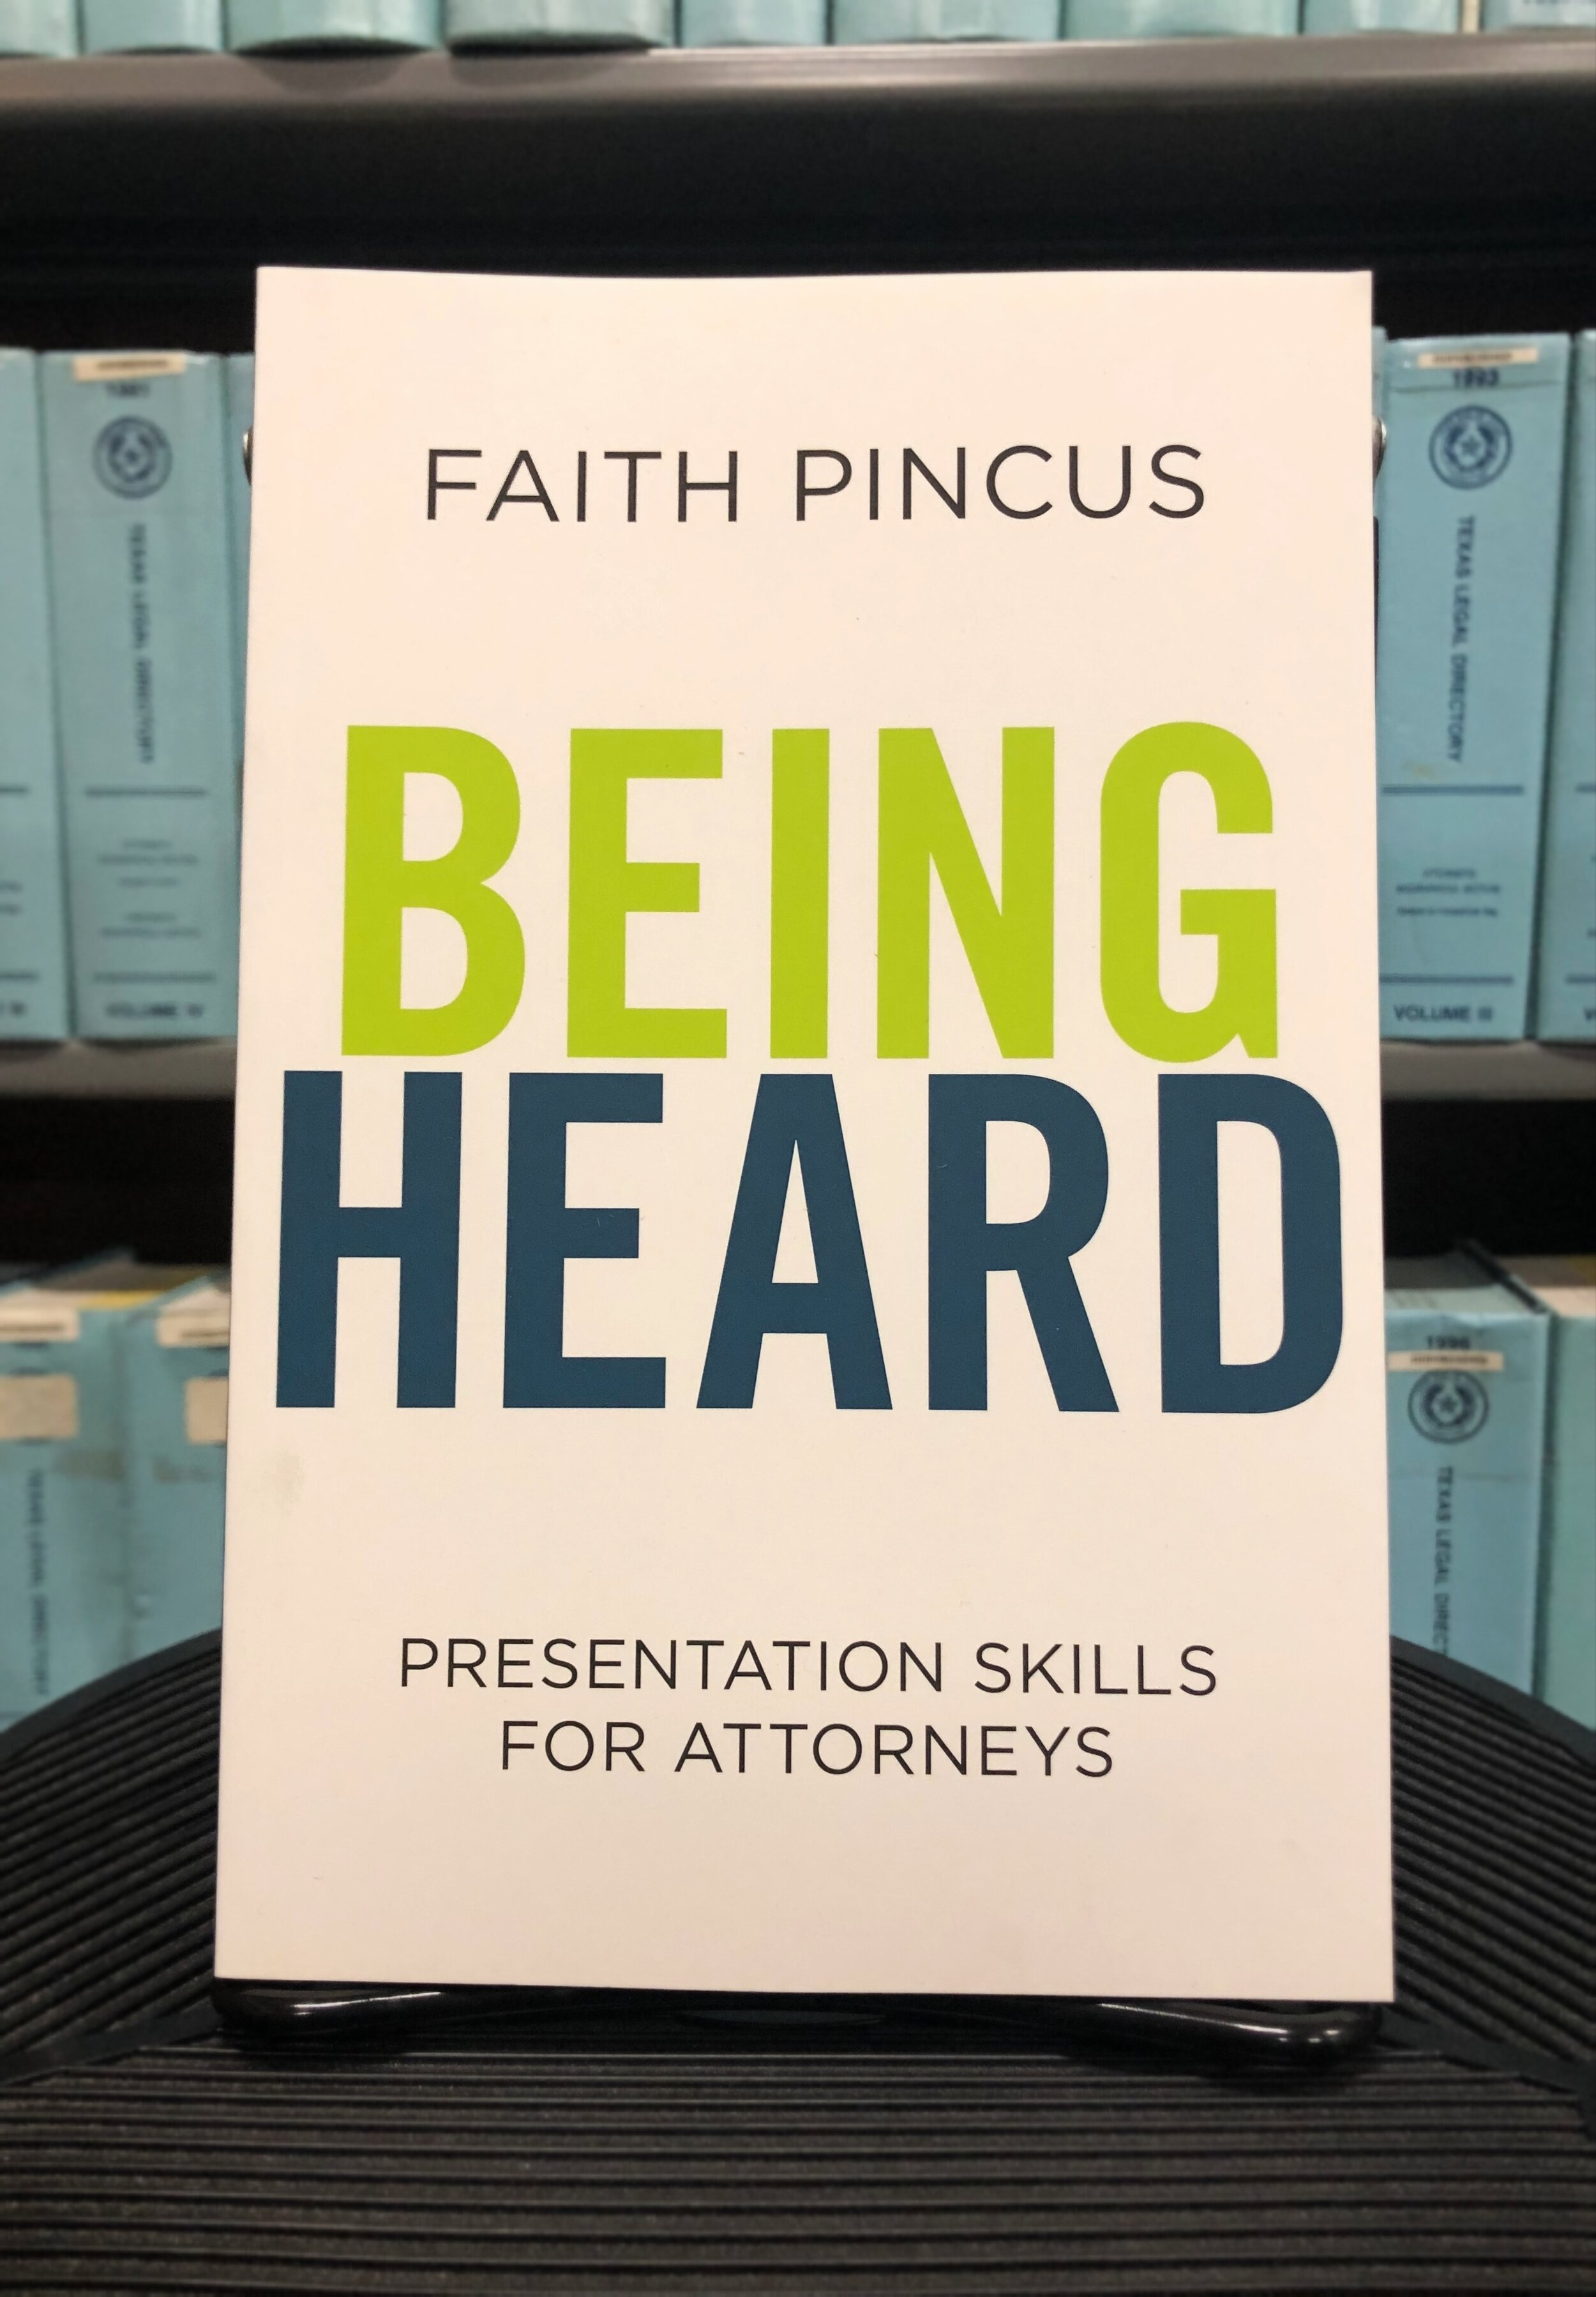 By Faith Pincus  Published by American Bar Association  KF 300 .P56 2018  Photo Credit: Helen Hartman